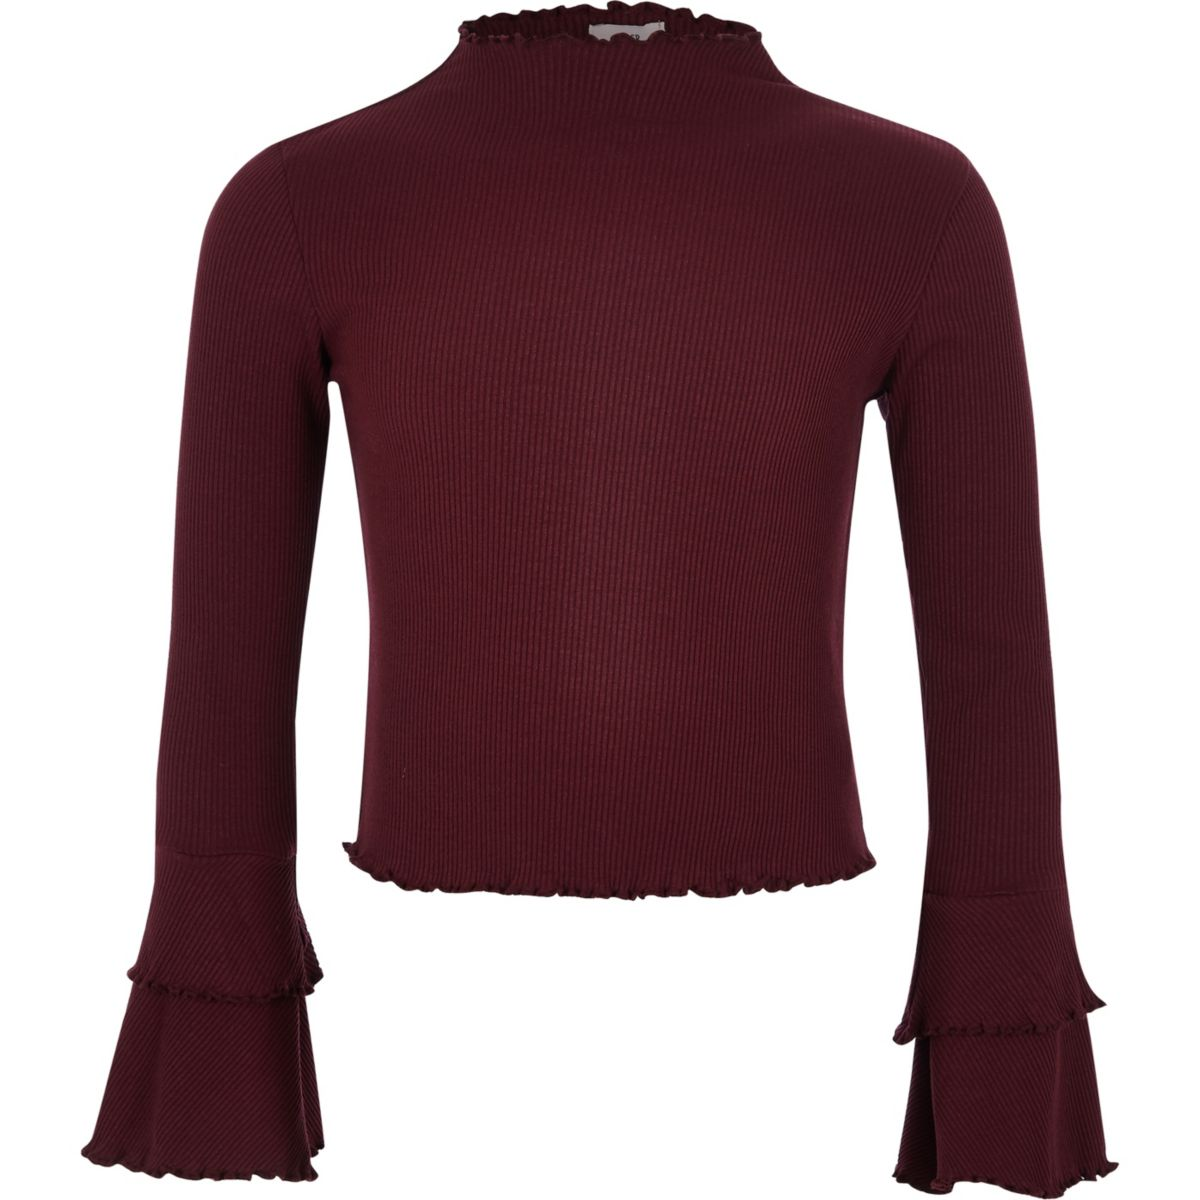 Girls dark red ribbed frill sleeve top